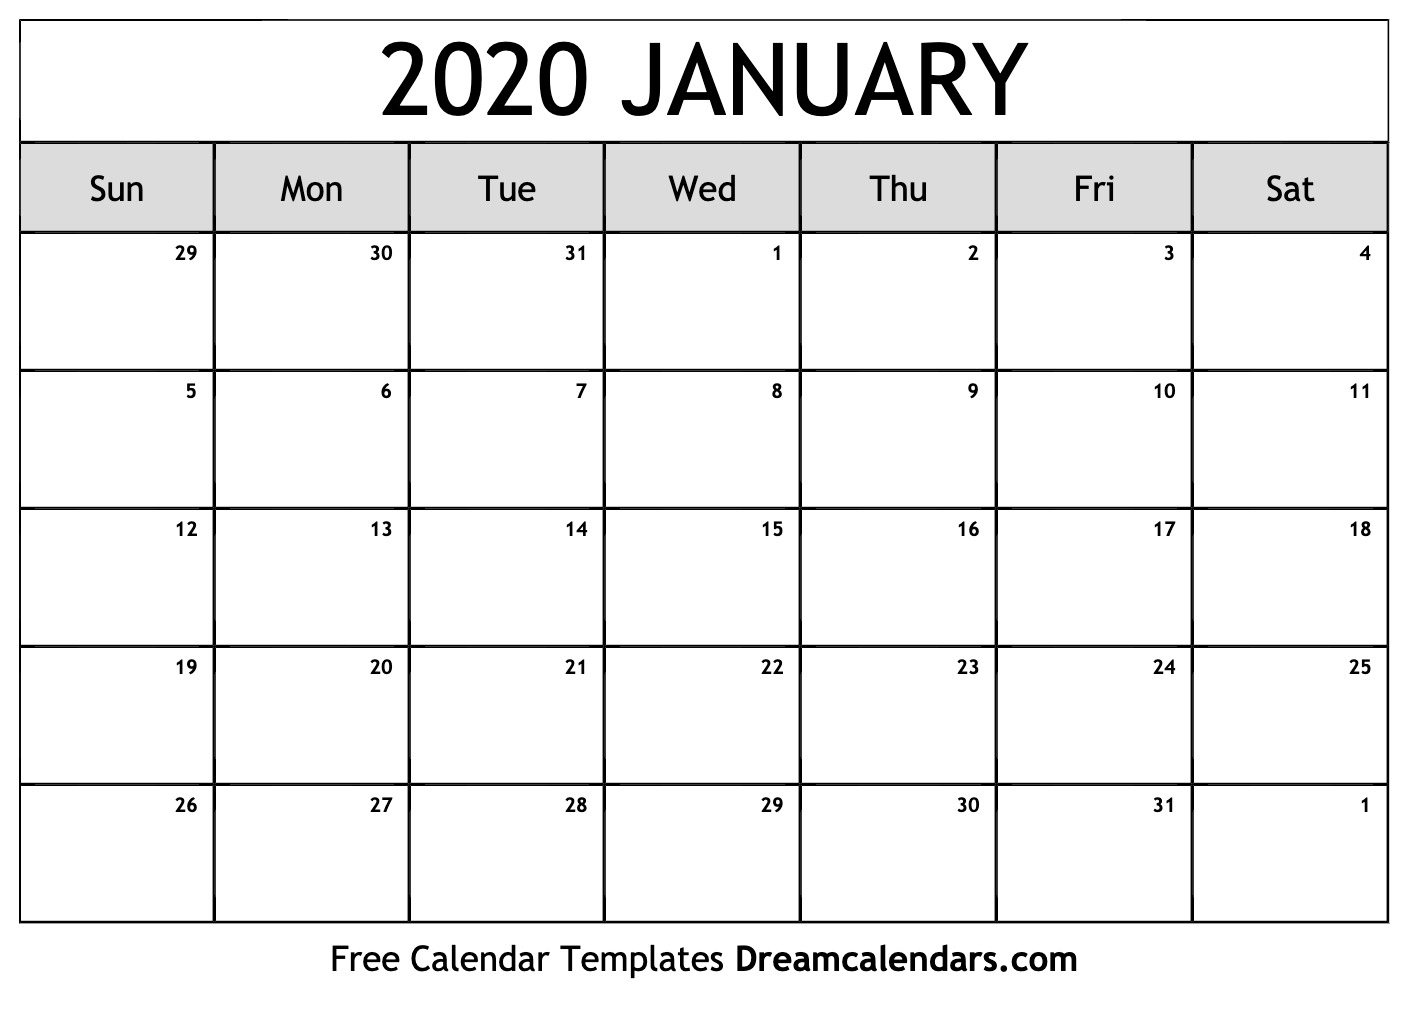 Printable January 2020 Calendar throughout Printable 2020 Calendar I Can Edit